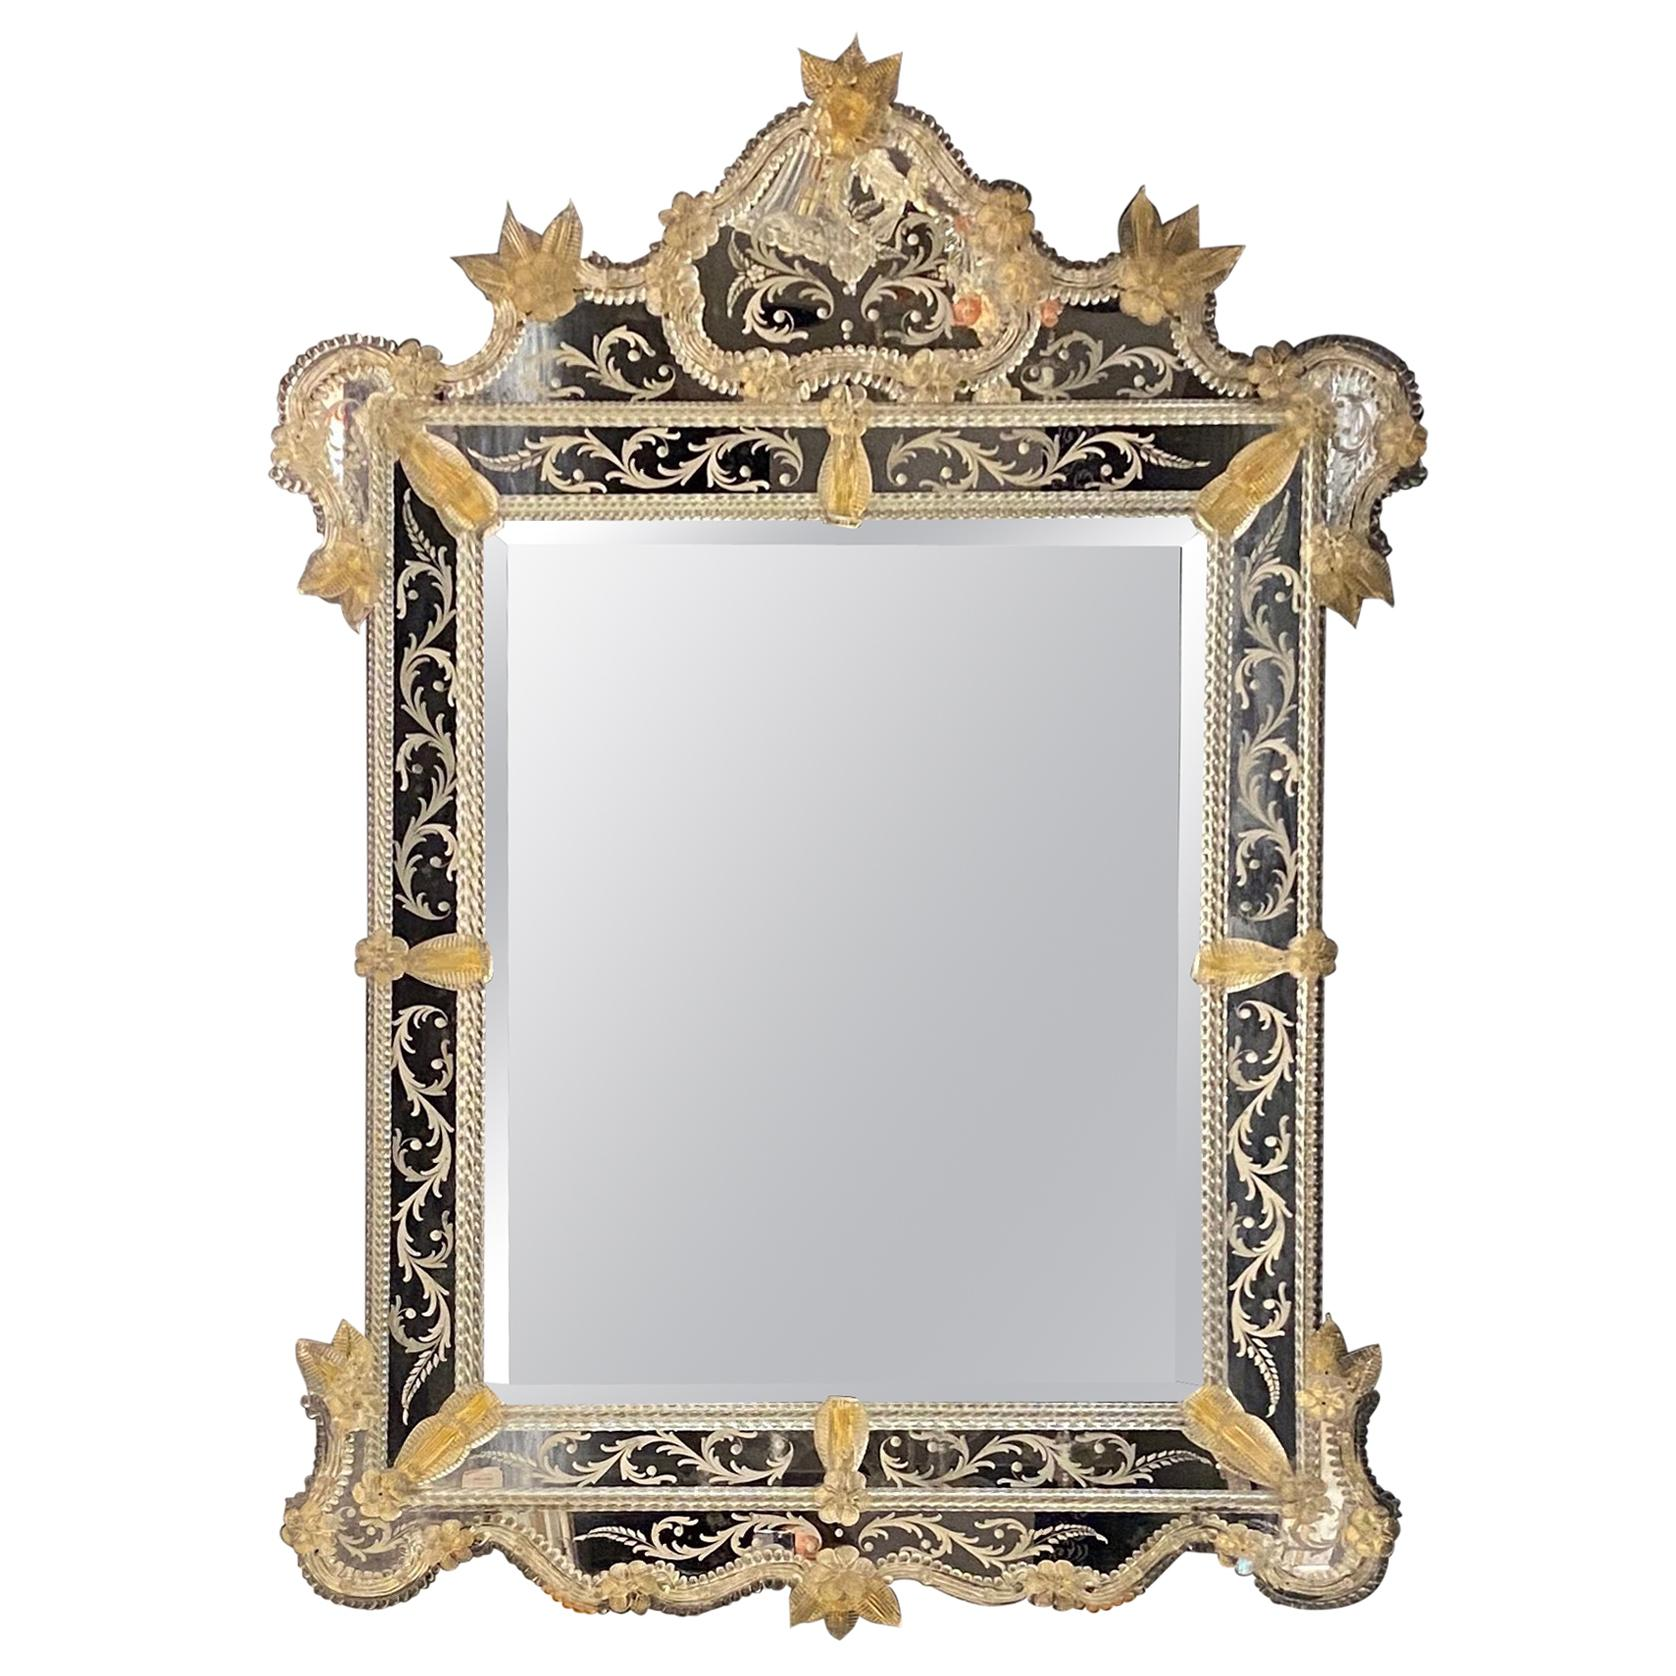 Superb Venetian Etched Murano Glass Mirror